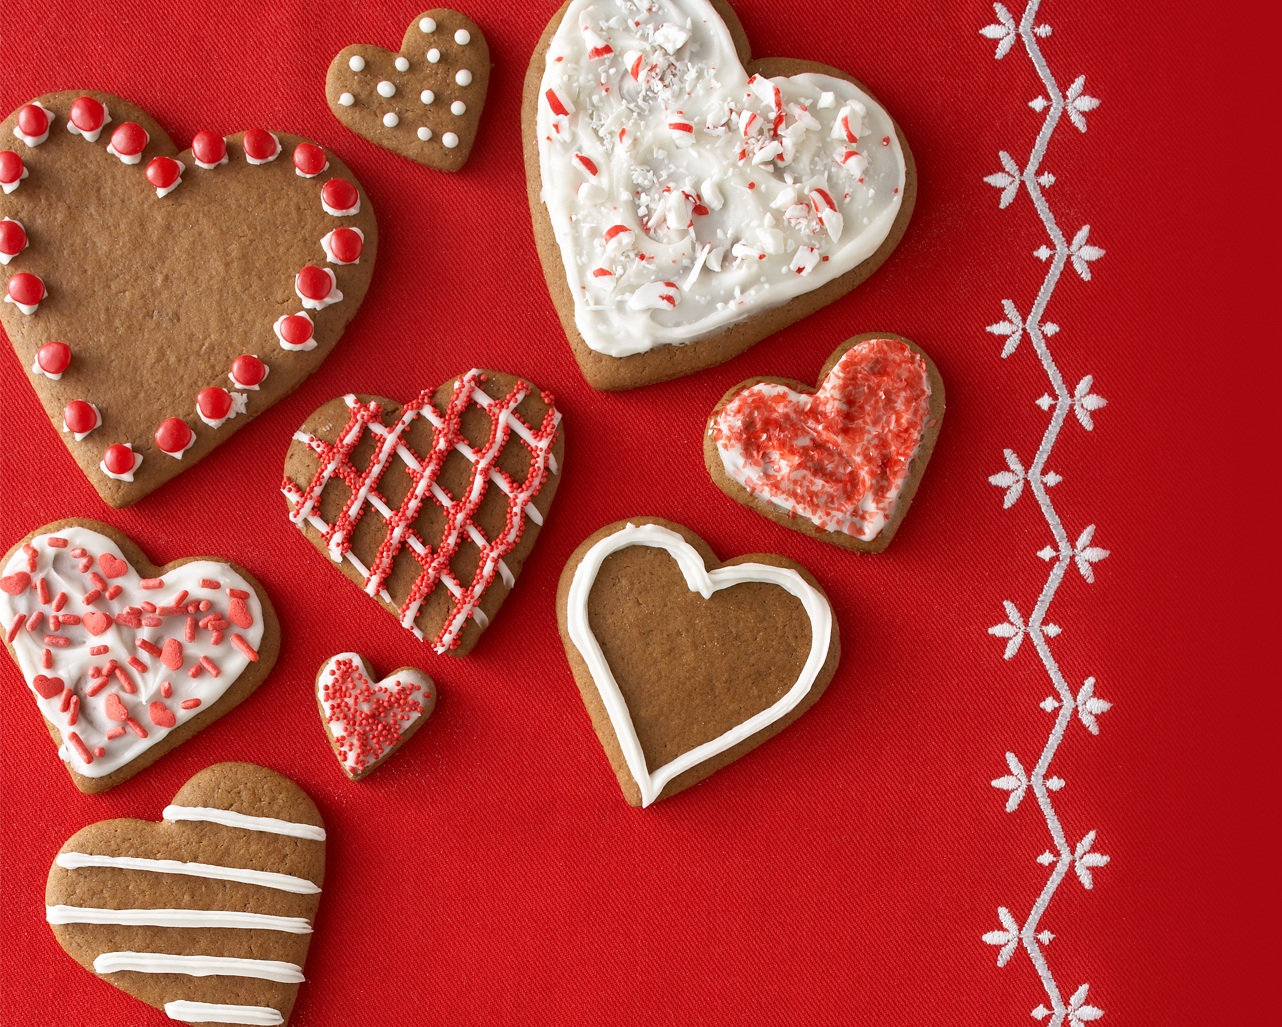 Cookies Valentines Day Wallpaper For Desktop   Cute Valentines Day 1282x1027